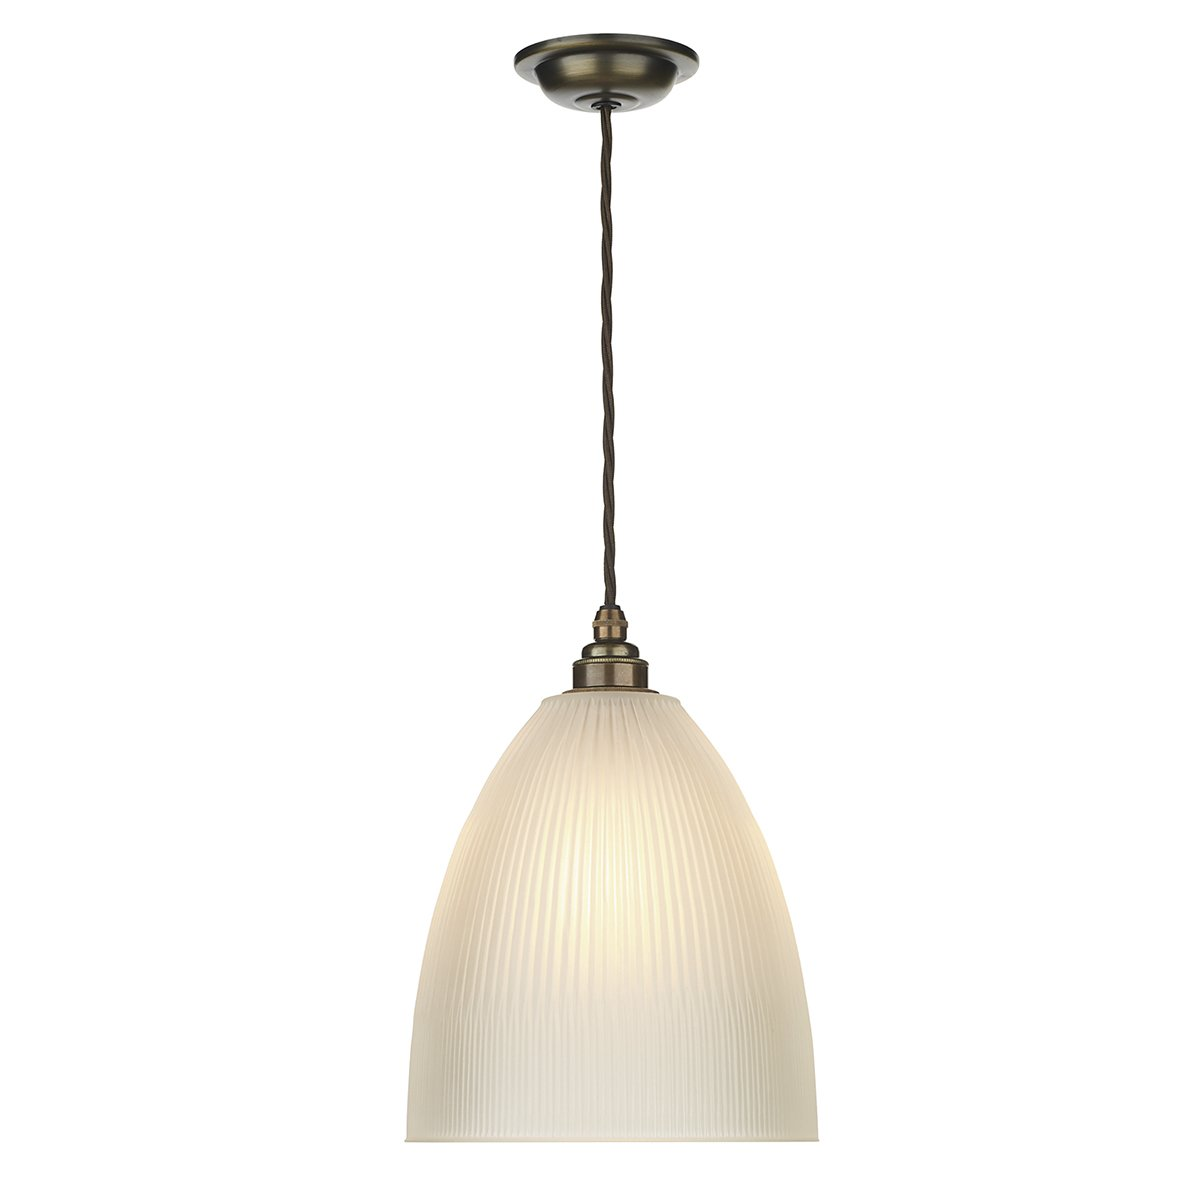 David Hunt Lighting DUX0175 Duxford 1 Light Pendant in Antique Brass